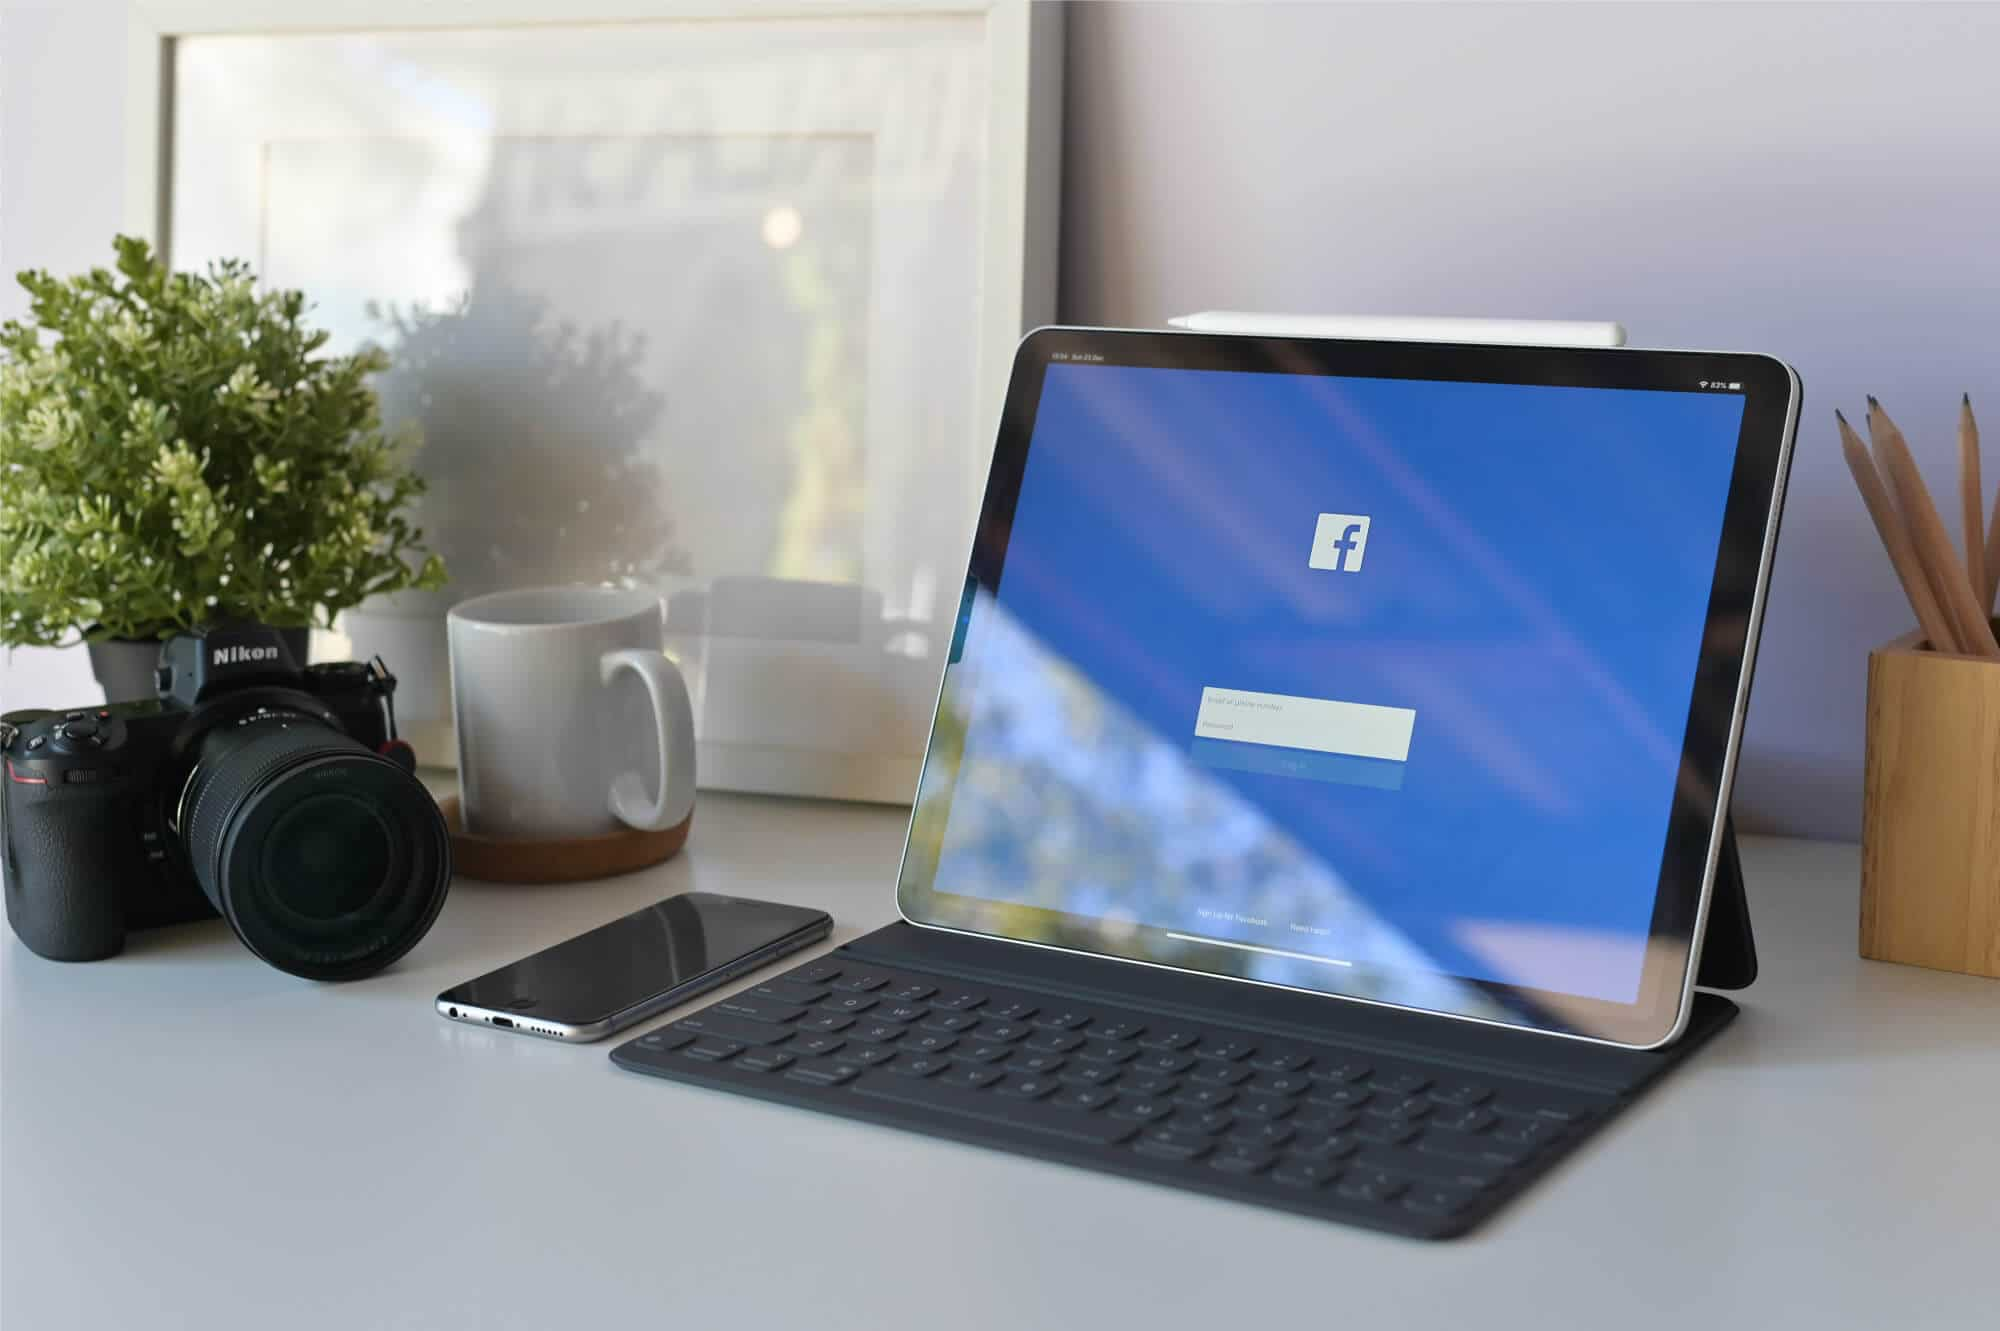 Facebook-Marketing-Agency-in-Cheshire---Atomic-Digital-Marketing - iPad with Facebook on Screen